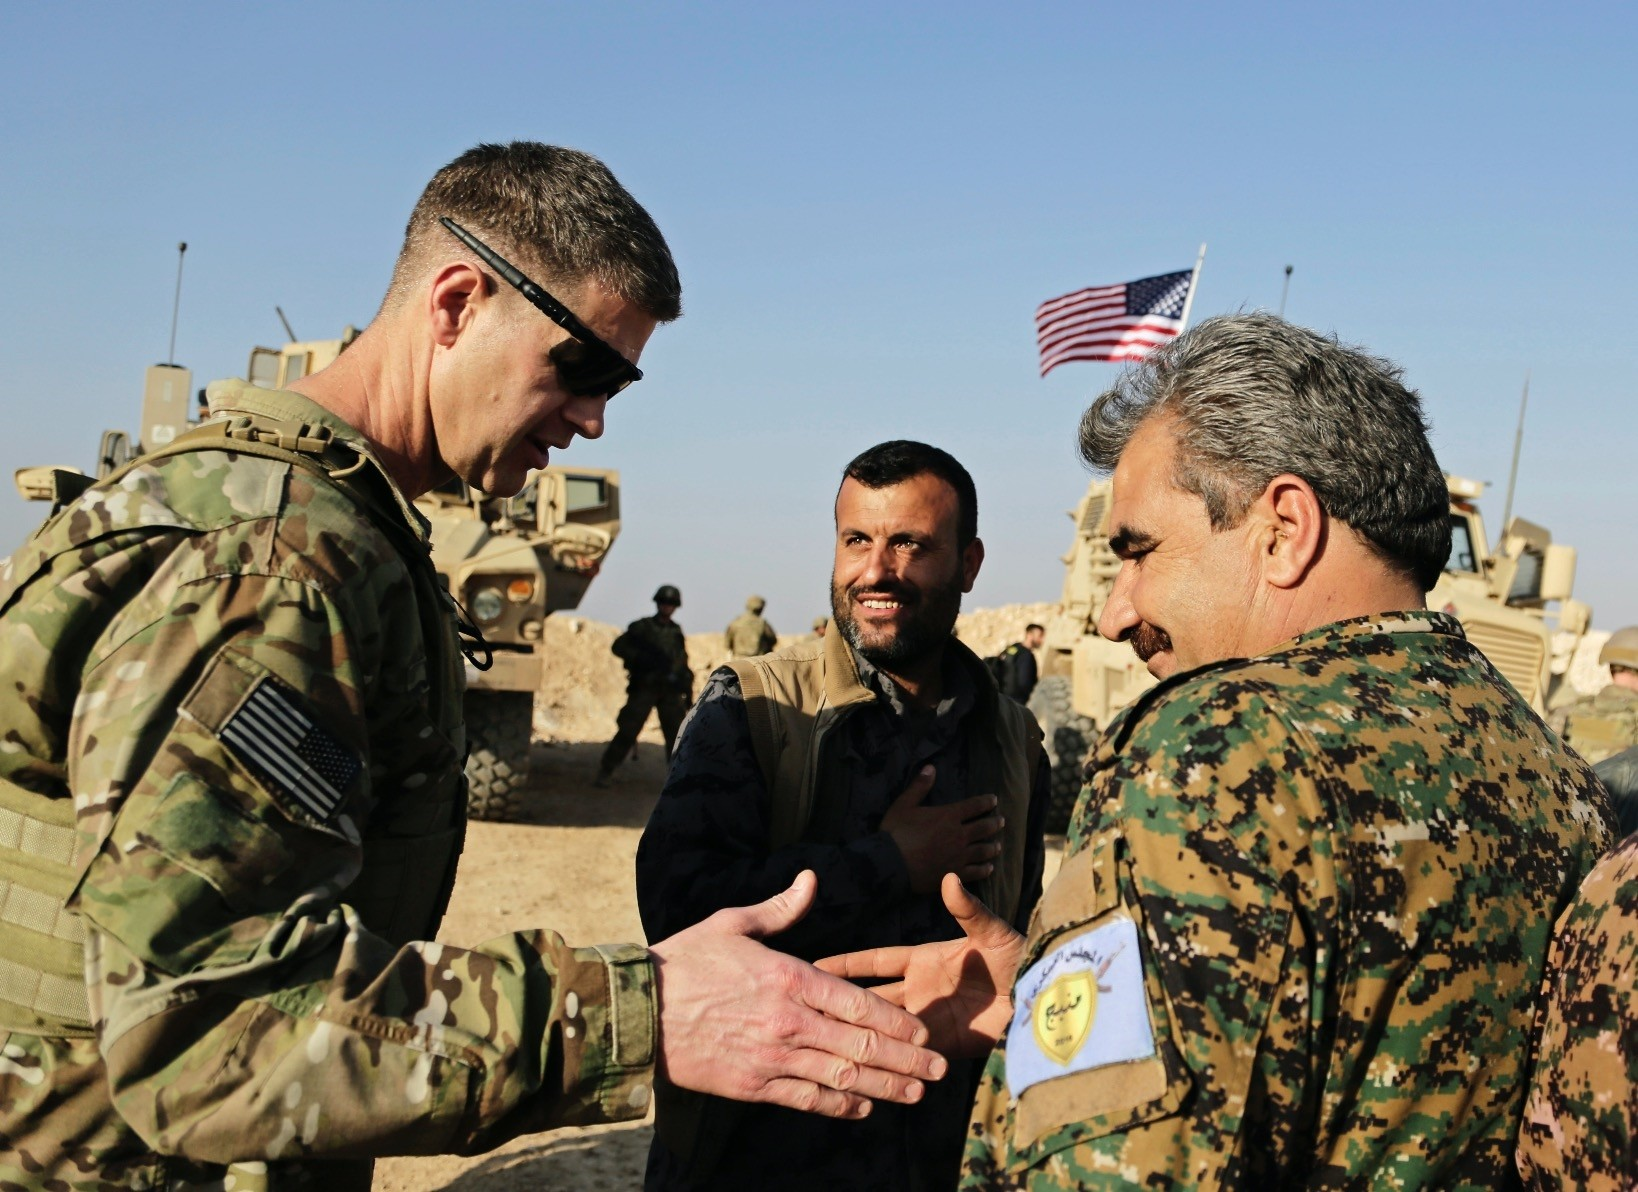 U.S. Army Maj. Gen. Jamie Jarrard (L), thanks the Manbij Military Council, which consists of YPG terrorists, including commander Muhammed Abu Adeel, during a visit to a small outpost near the town of Manbij, northern Syria, Feb. 7.